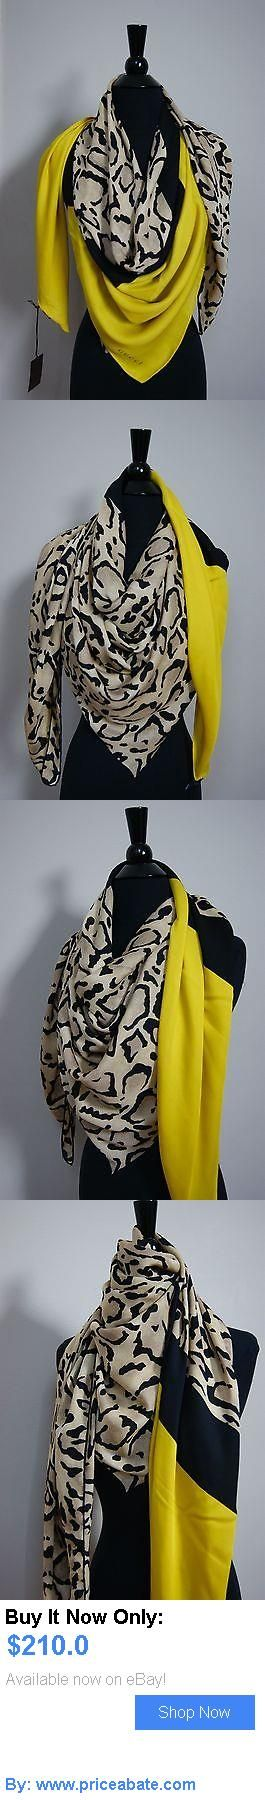 Women Accessories: Gucci Leopard Print Yellow Edge Silk Womens Authentic Scarf Shawl BUY IT NOW ONLY: $210.0 #priceabateWomenAccessories OR #priceabate